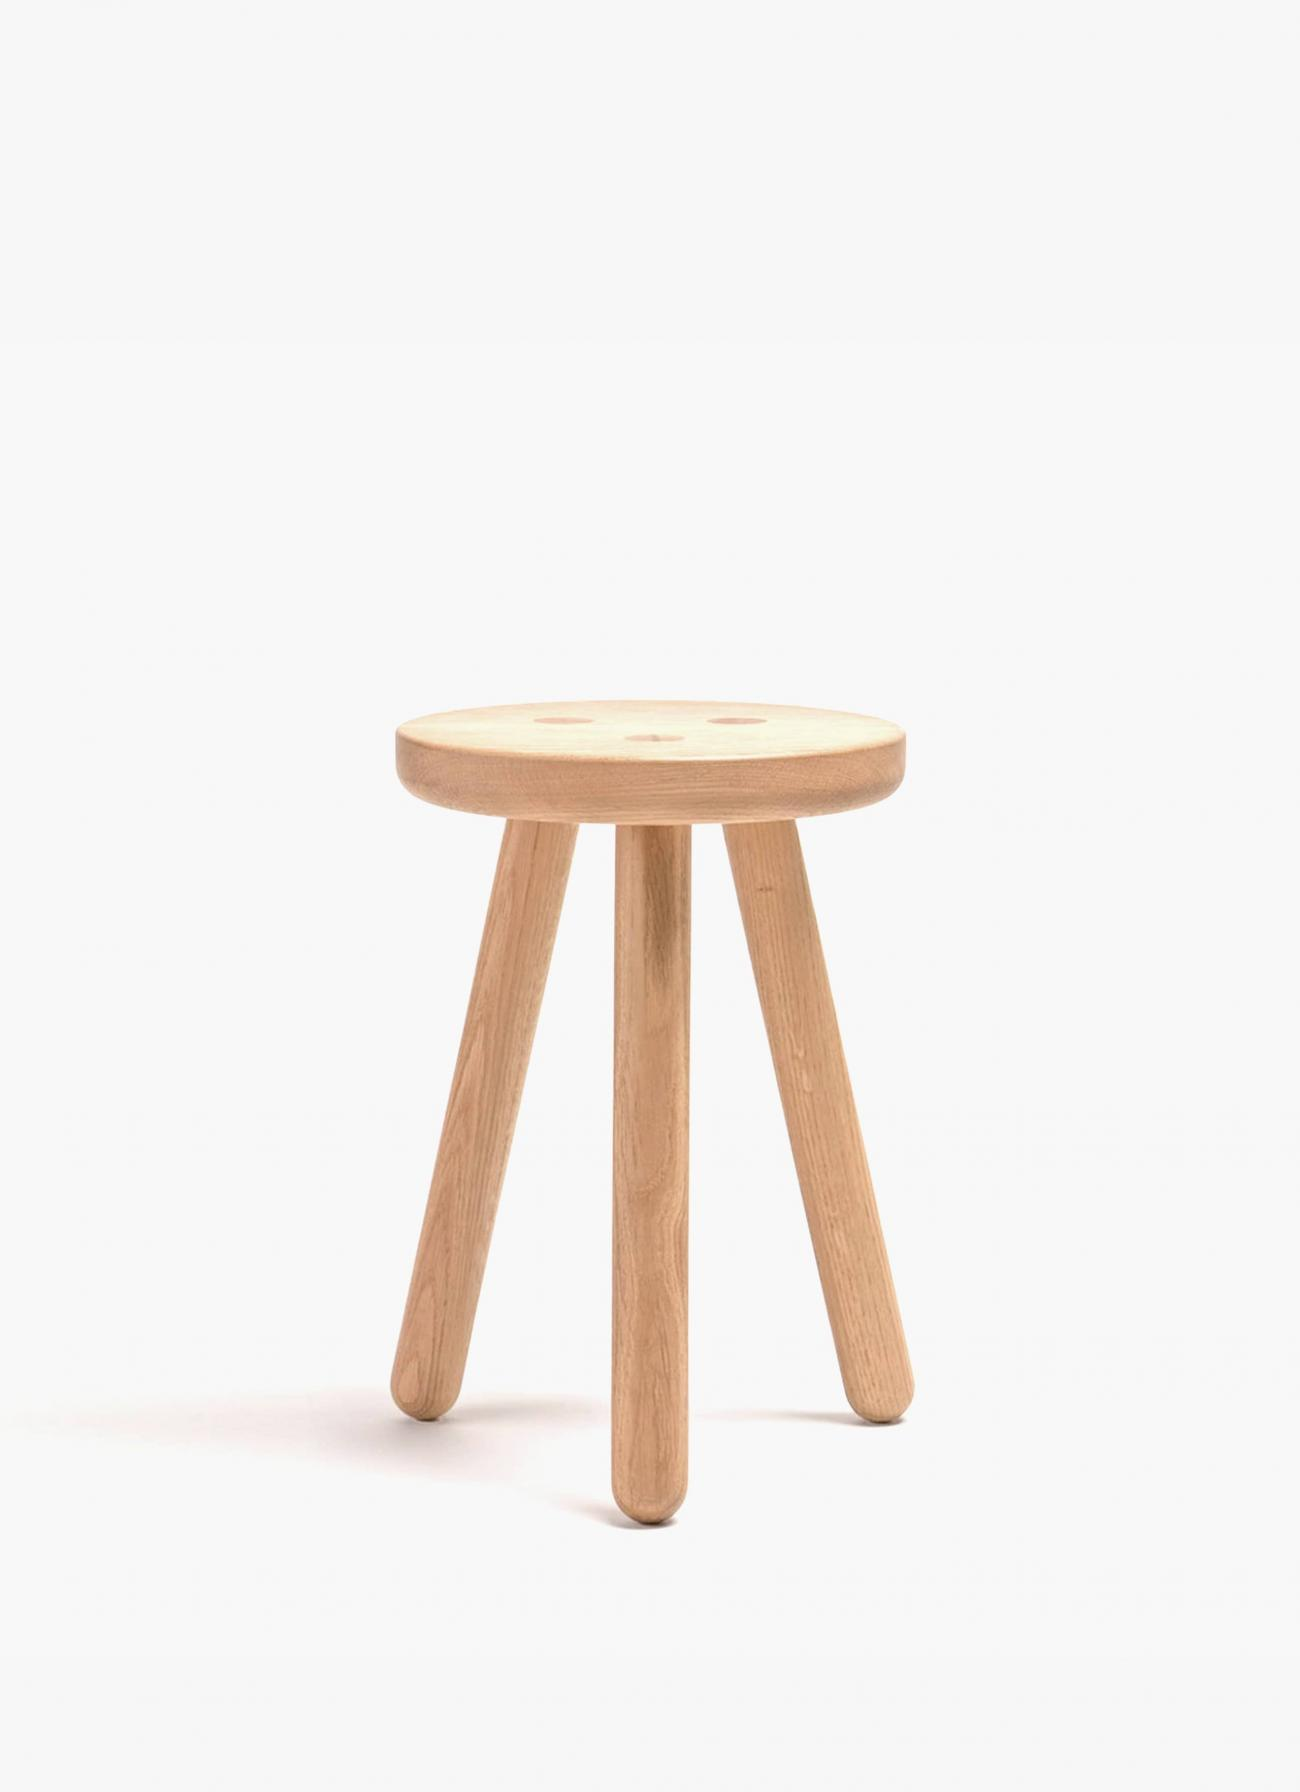 Another Country - Stool One - oak